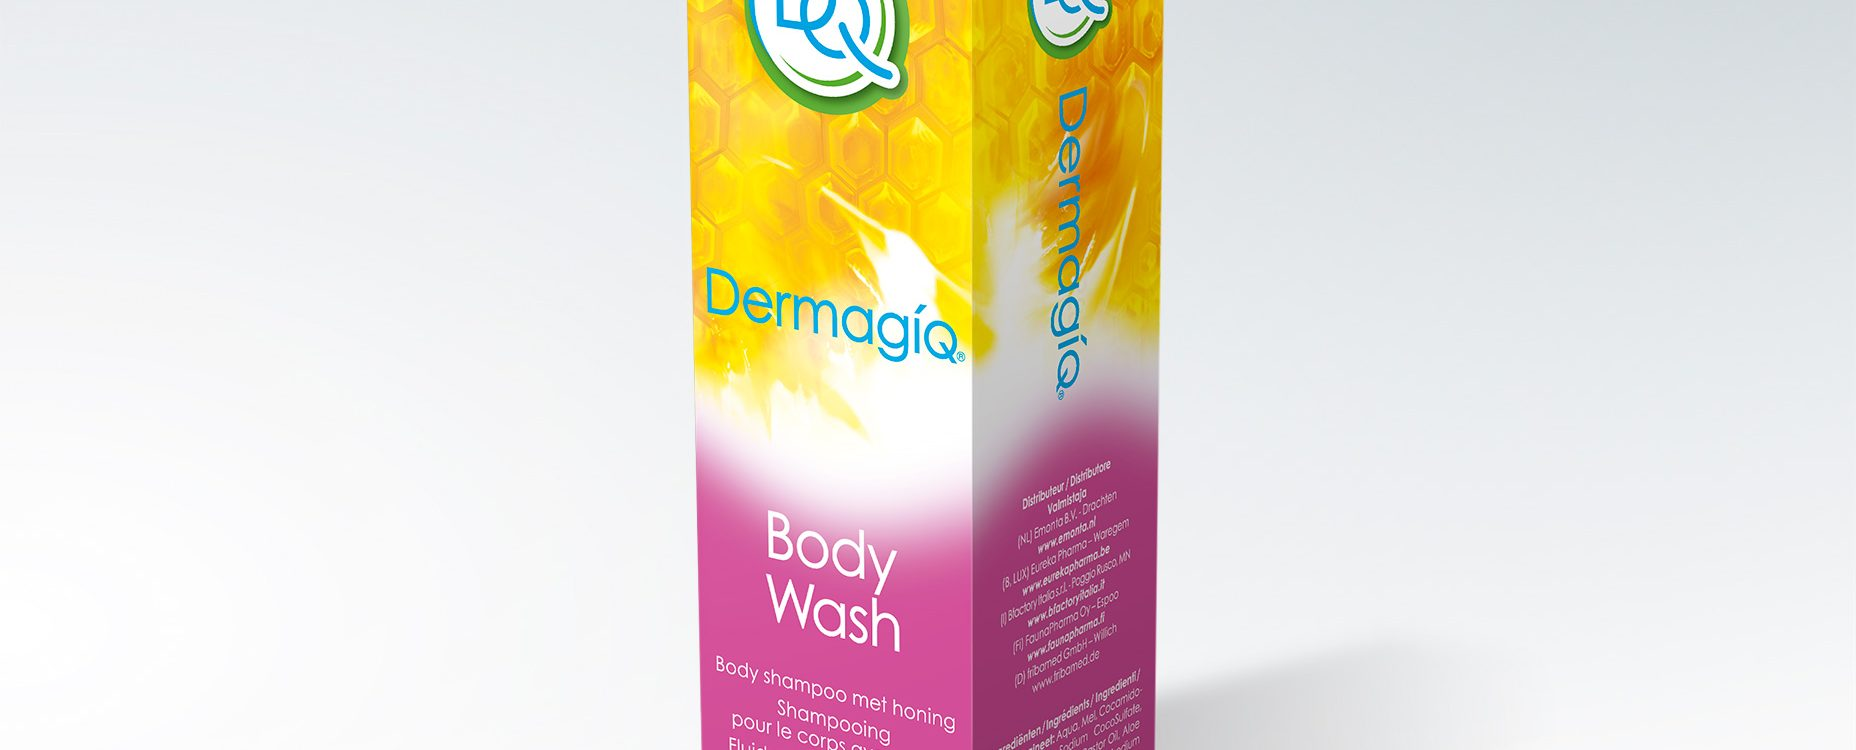 Dermagiq Body Wash